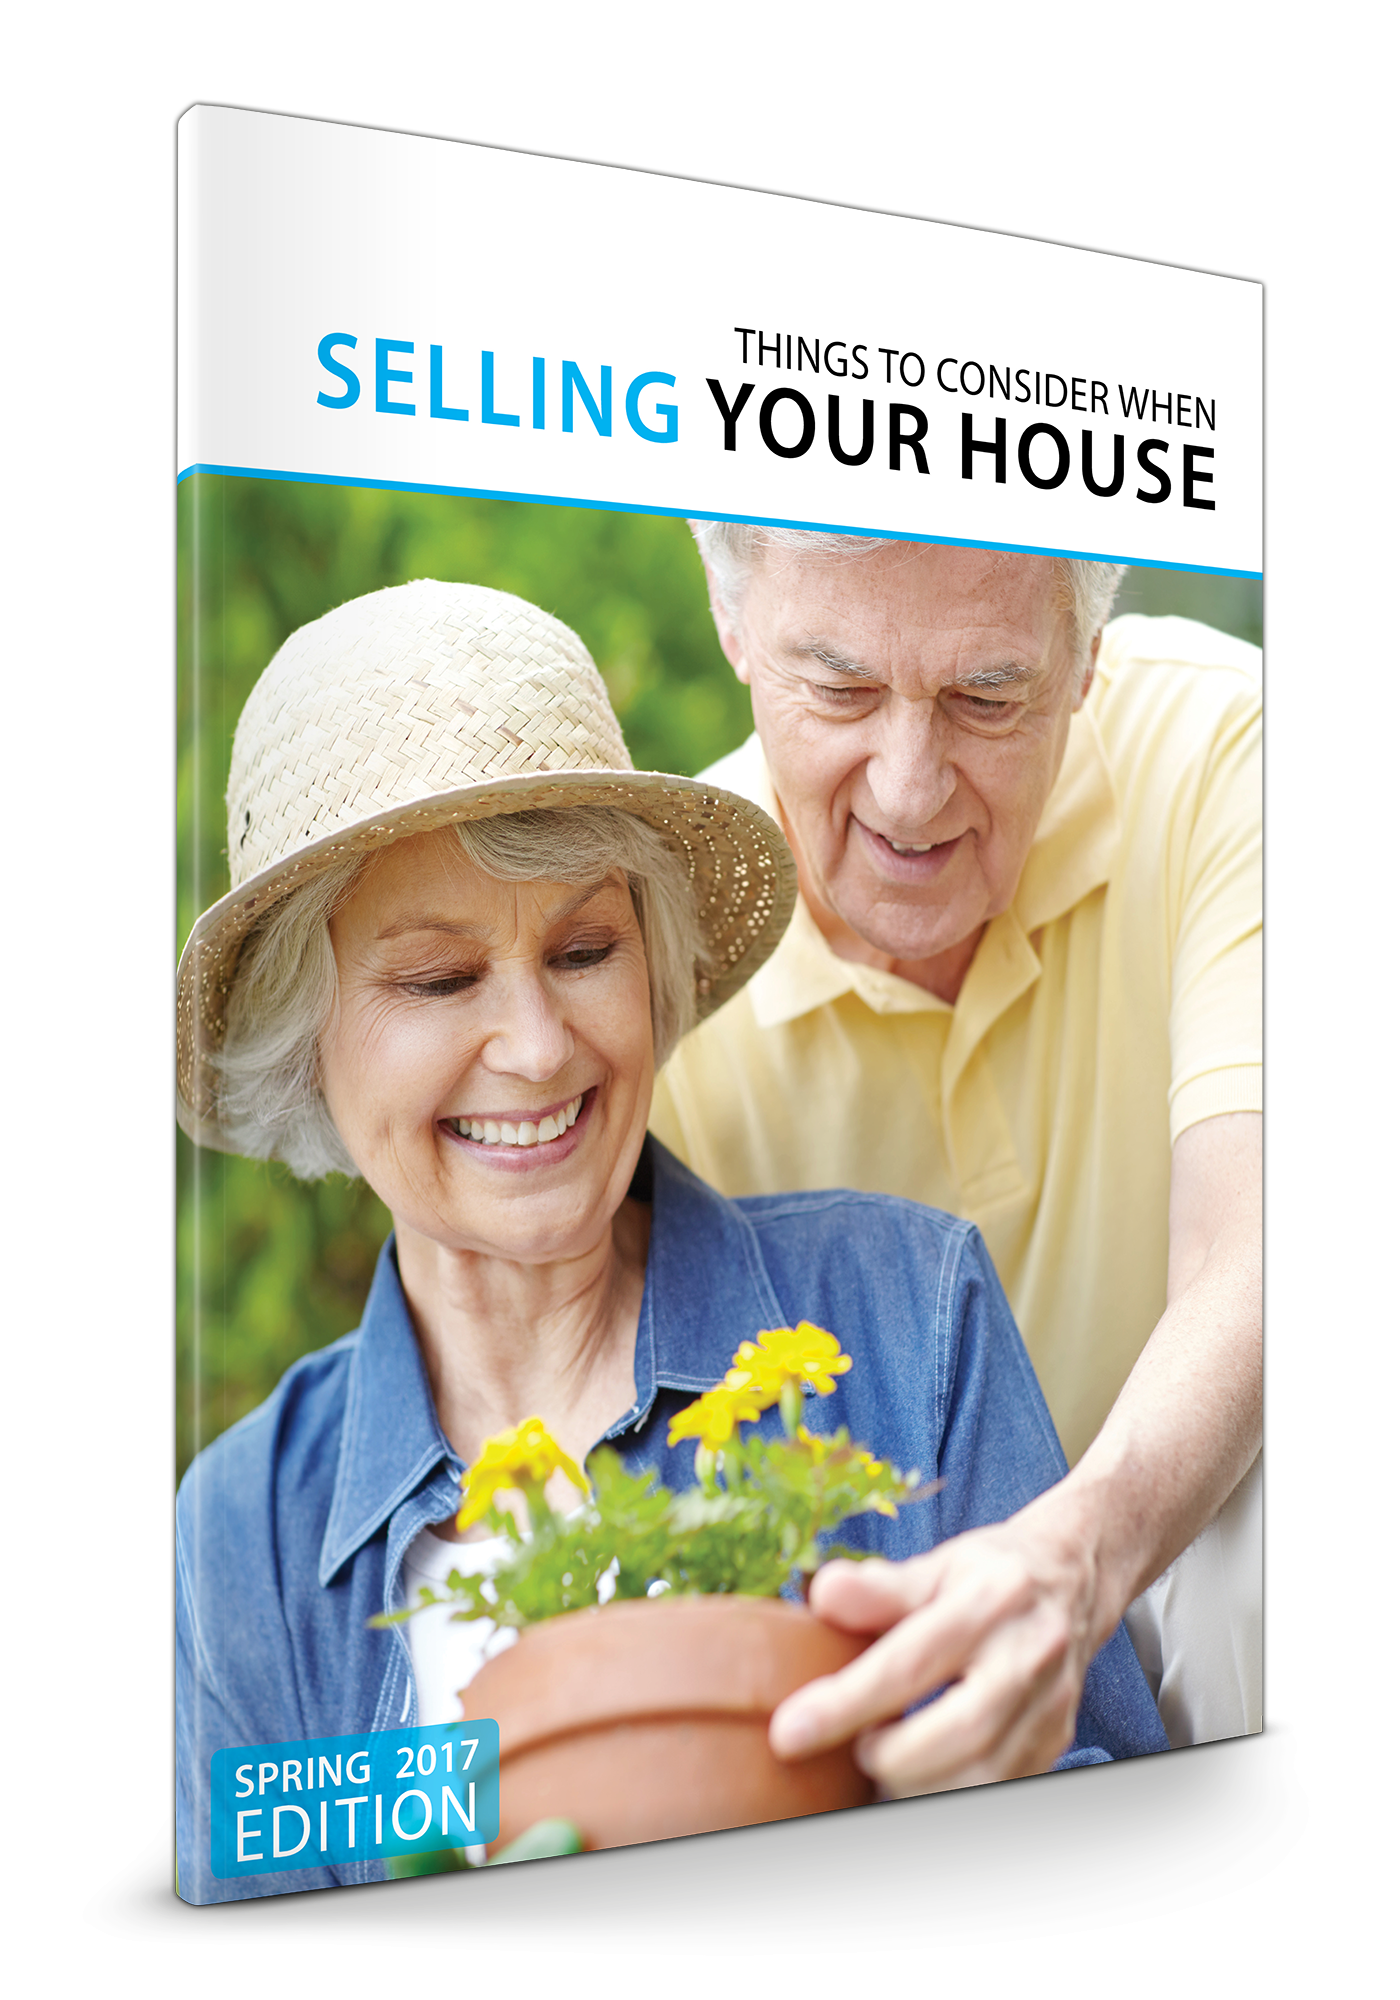 Home Sellers' Guide